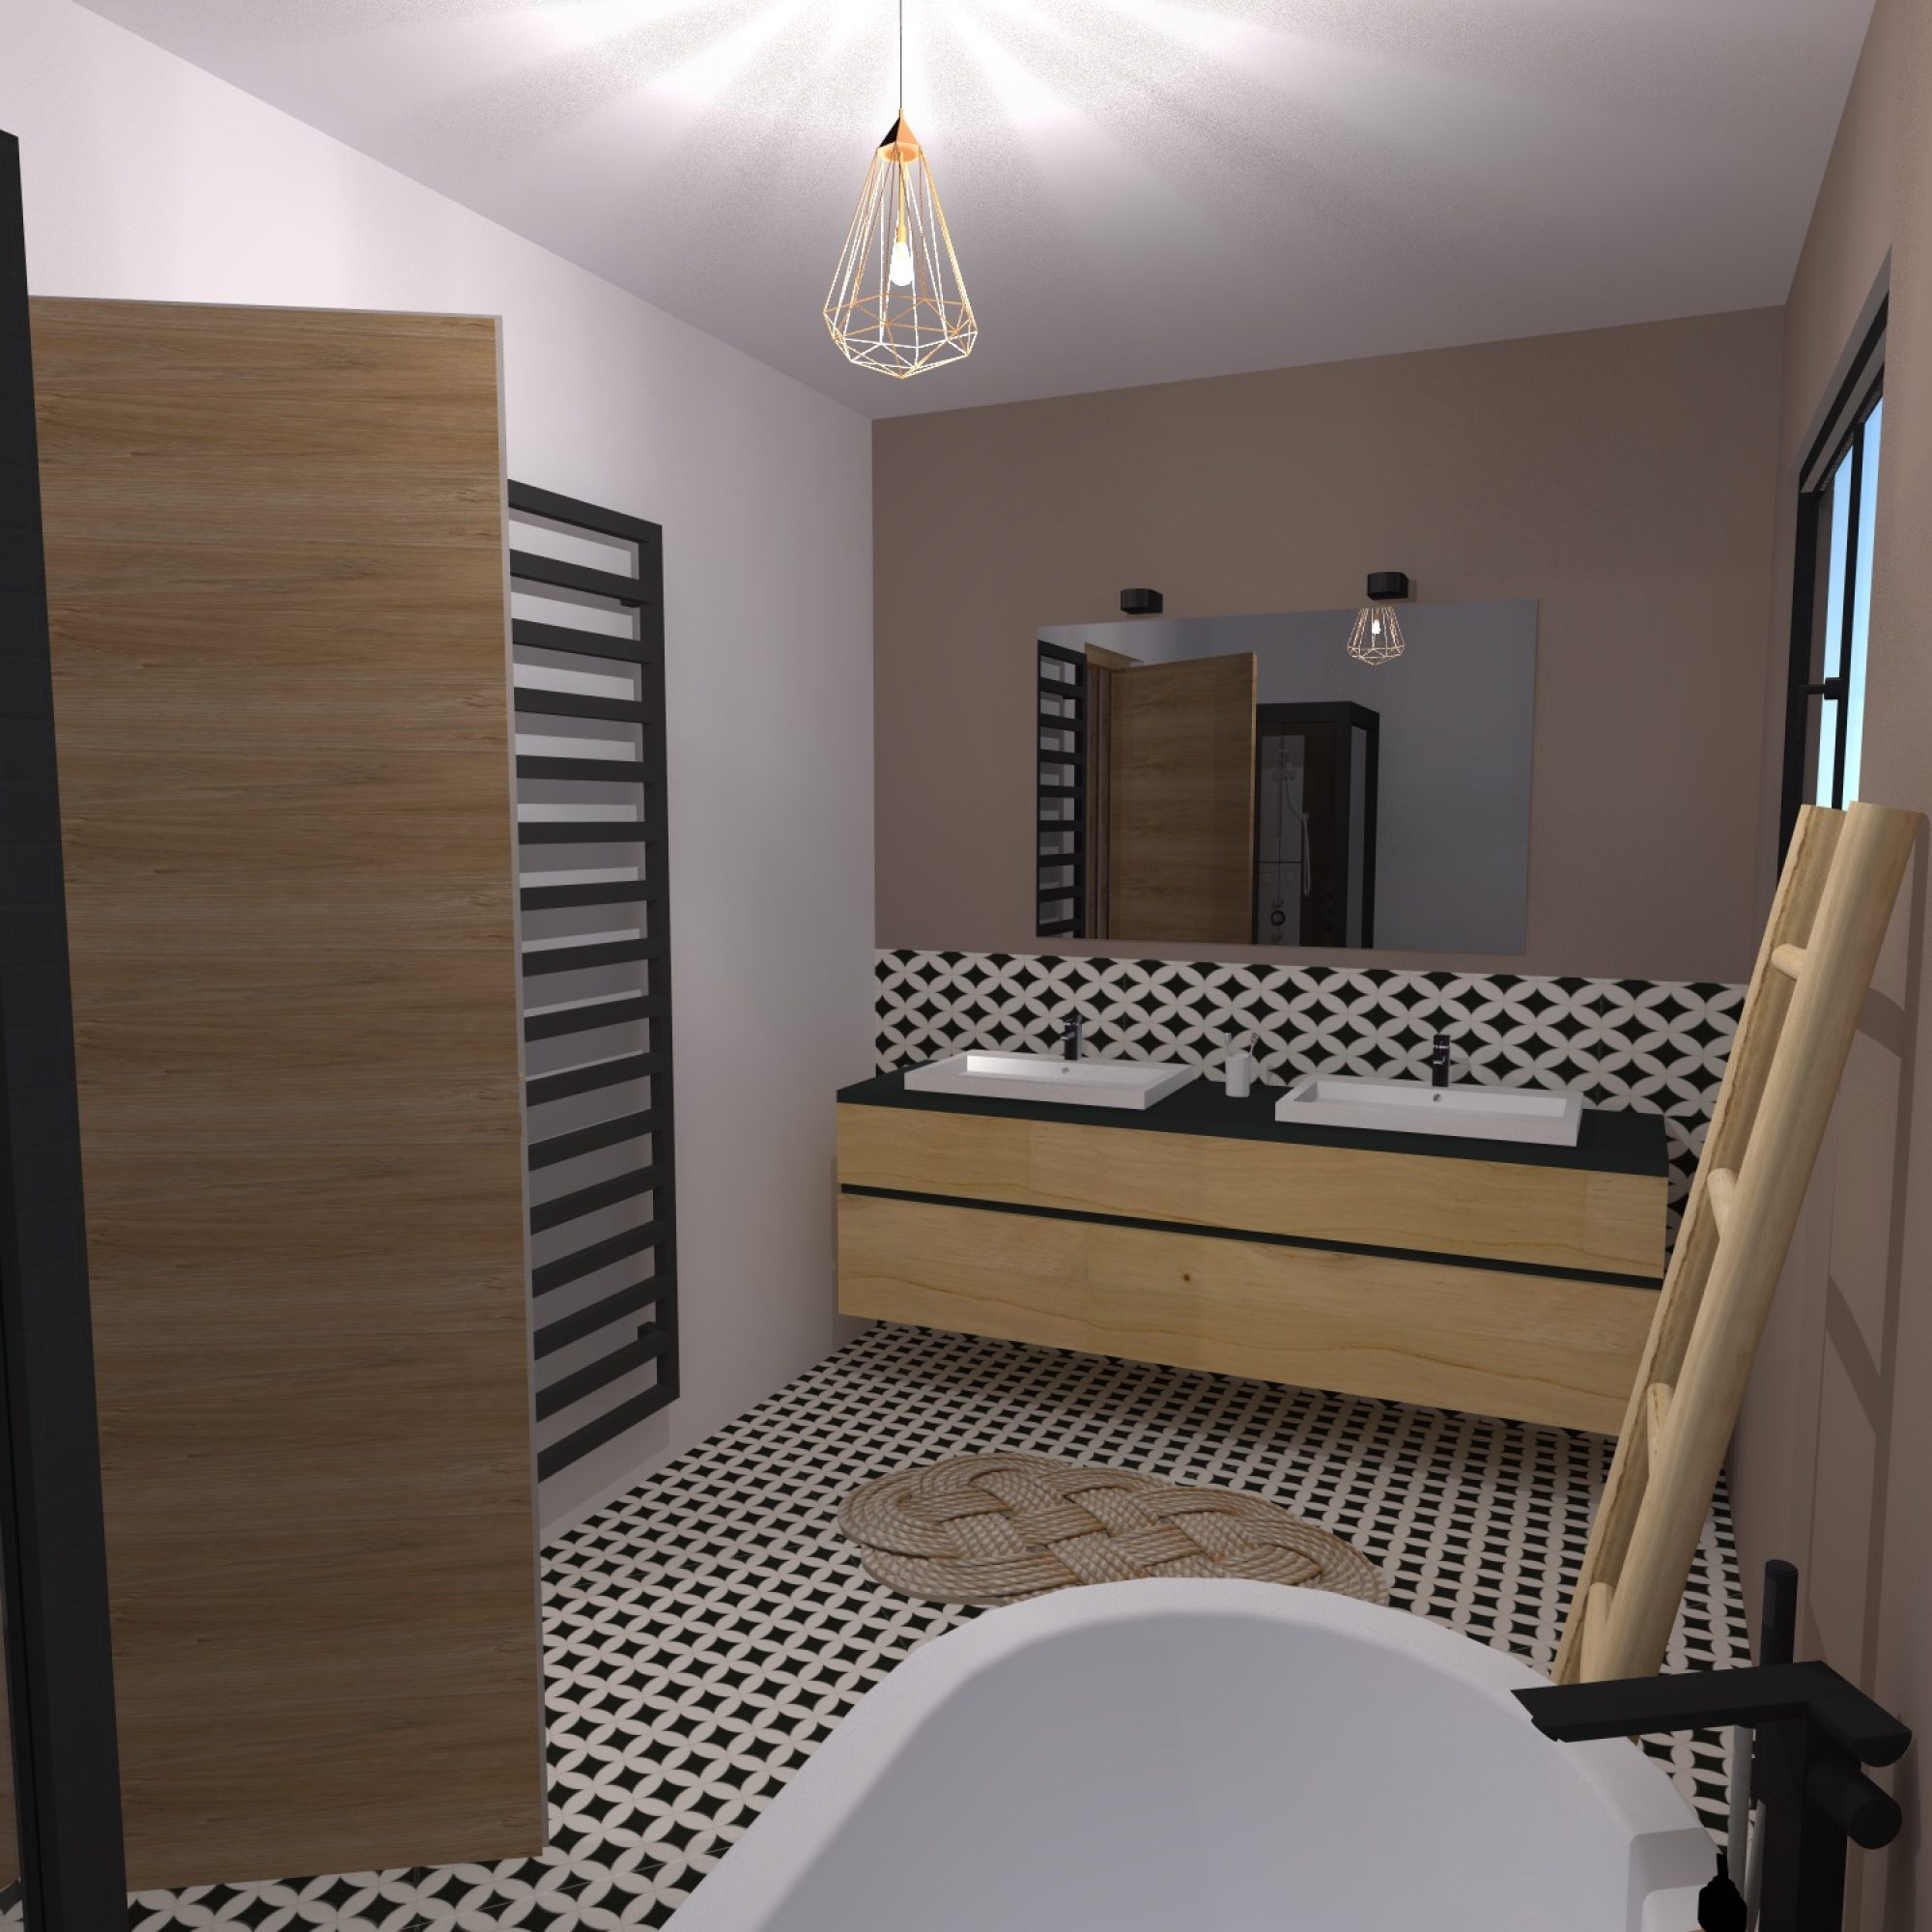 salledebain_carreauxdeciment_surmesure_baignoireilot_meublevasque_architected'interieur_montpellier